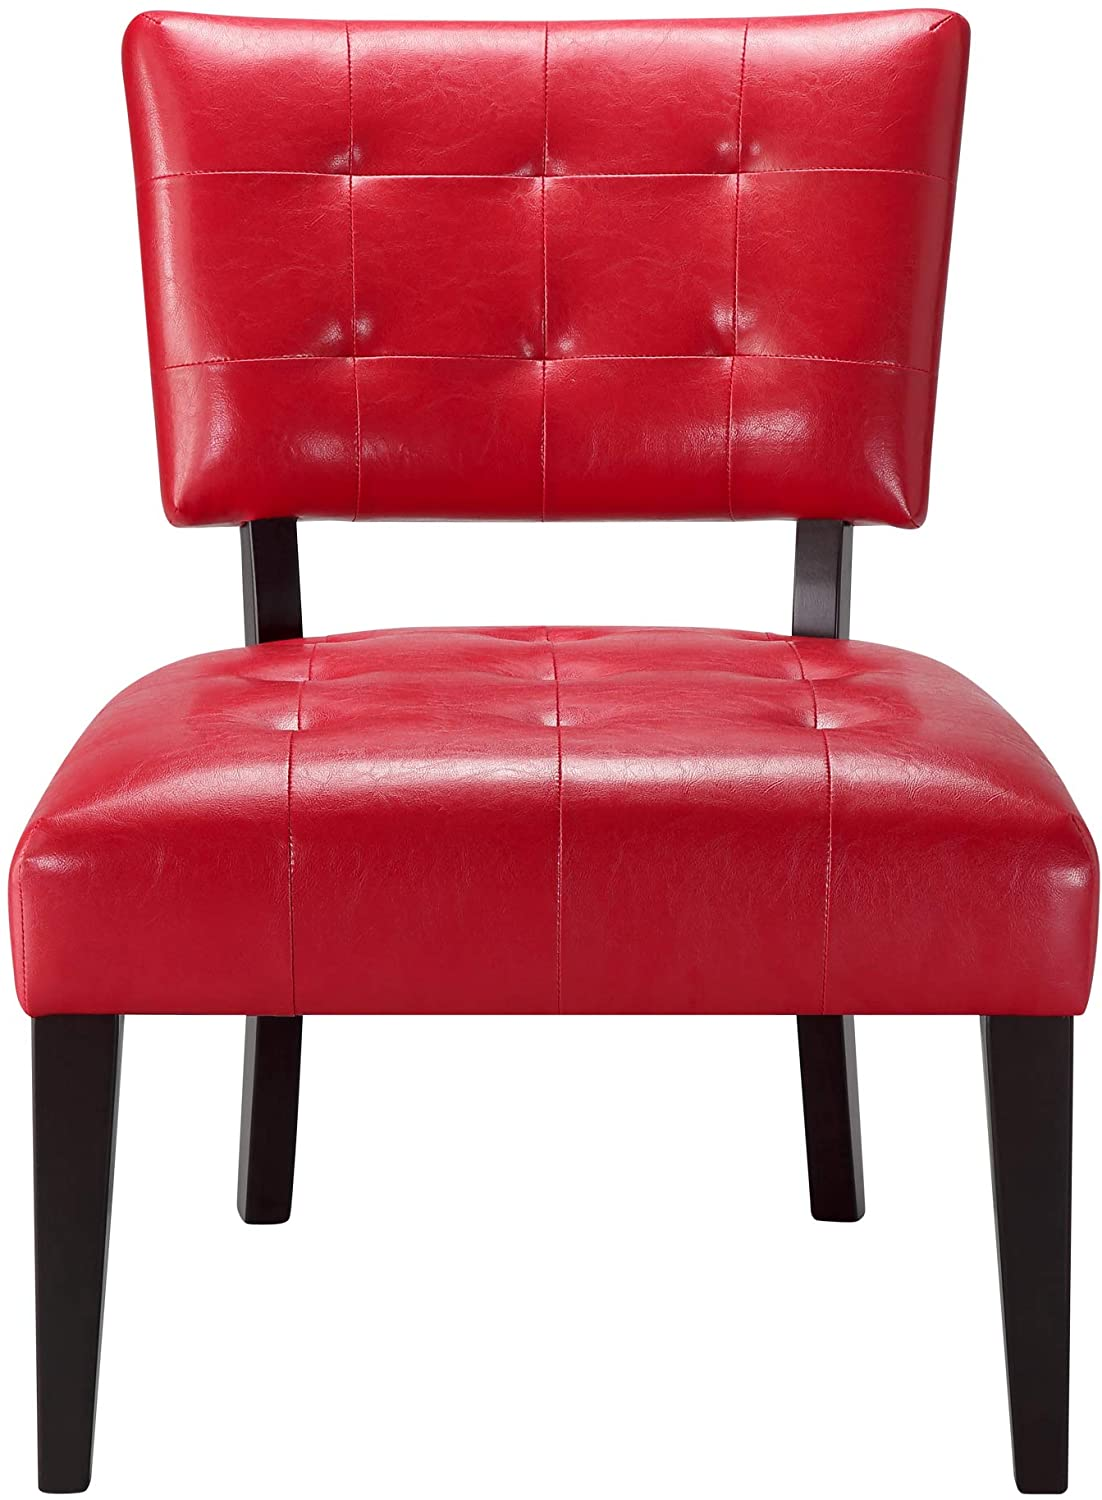 Ball & Cast Accent Chair, Red